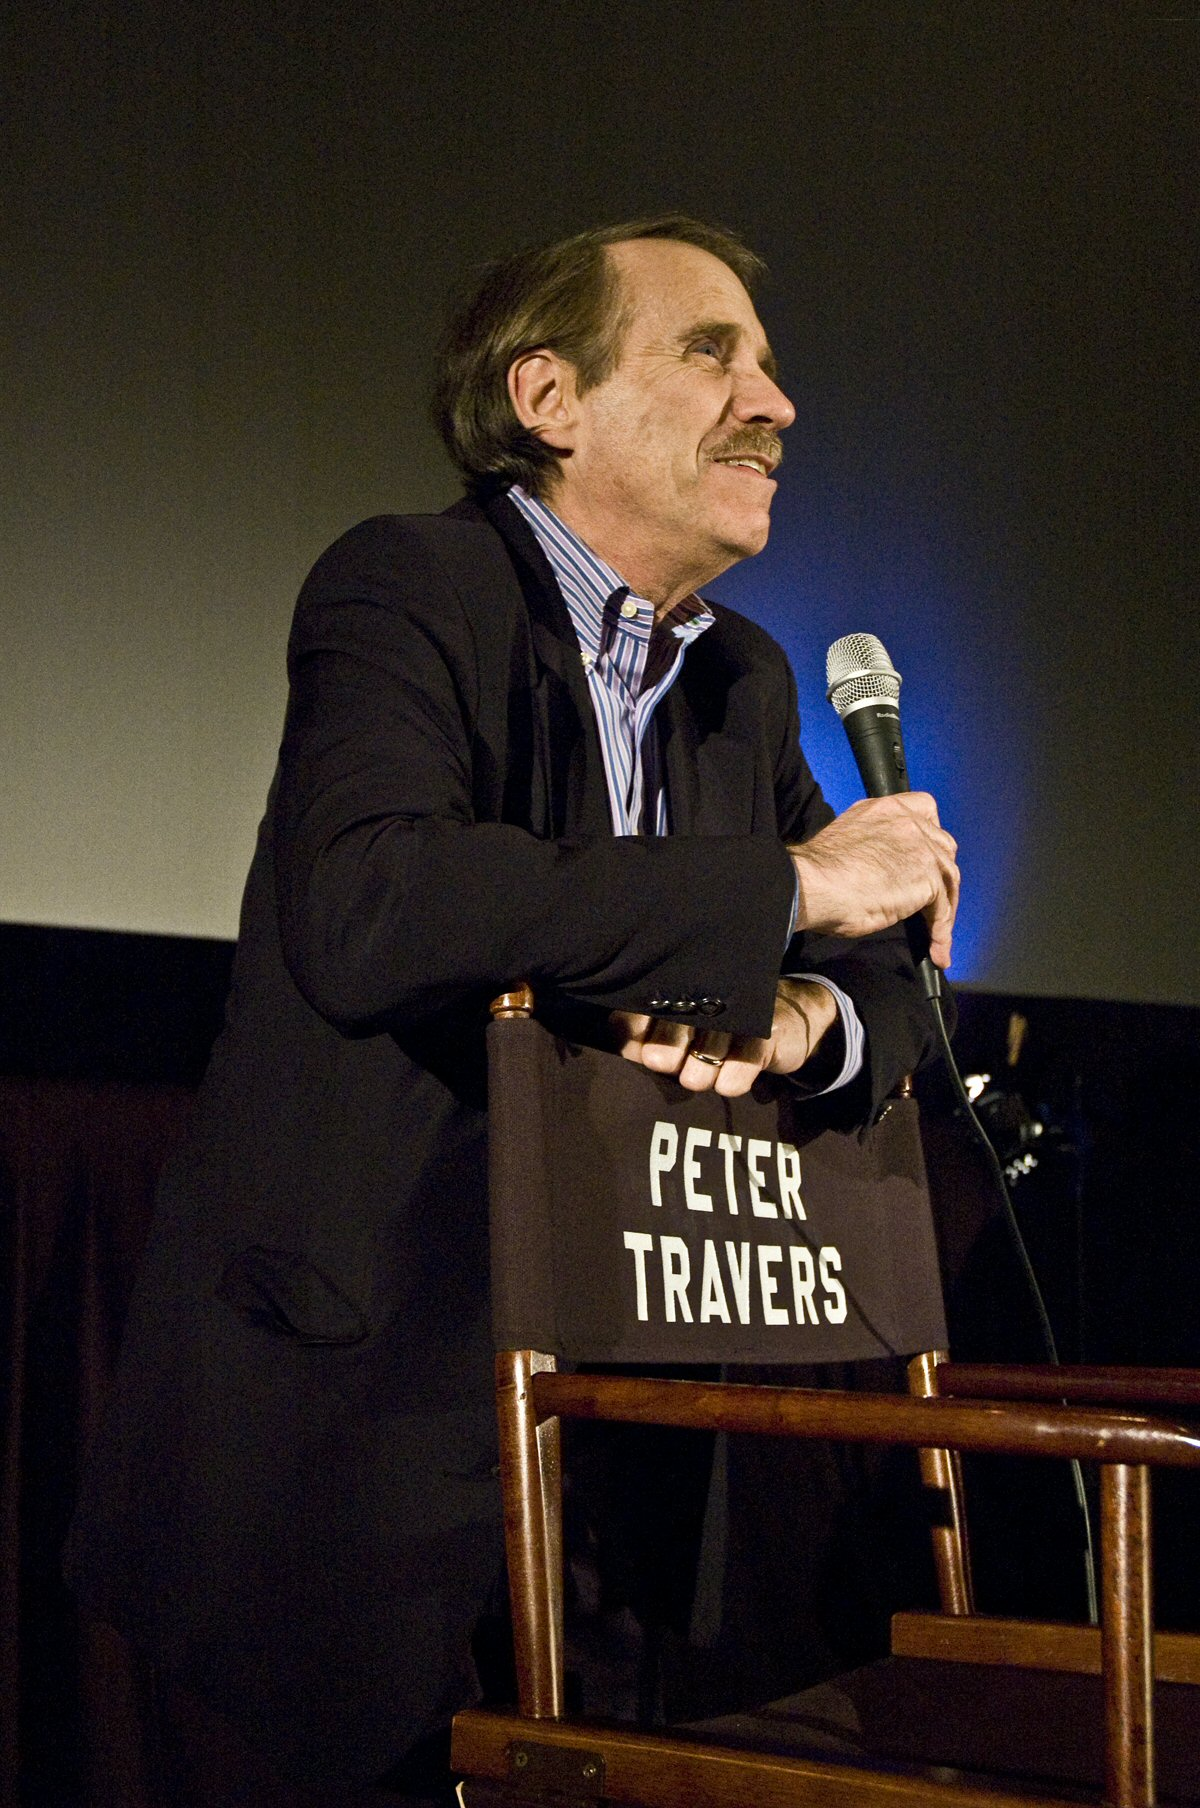 Depiction of Peter Travers